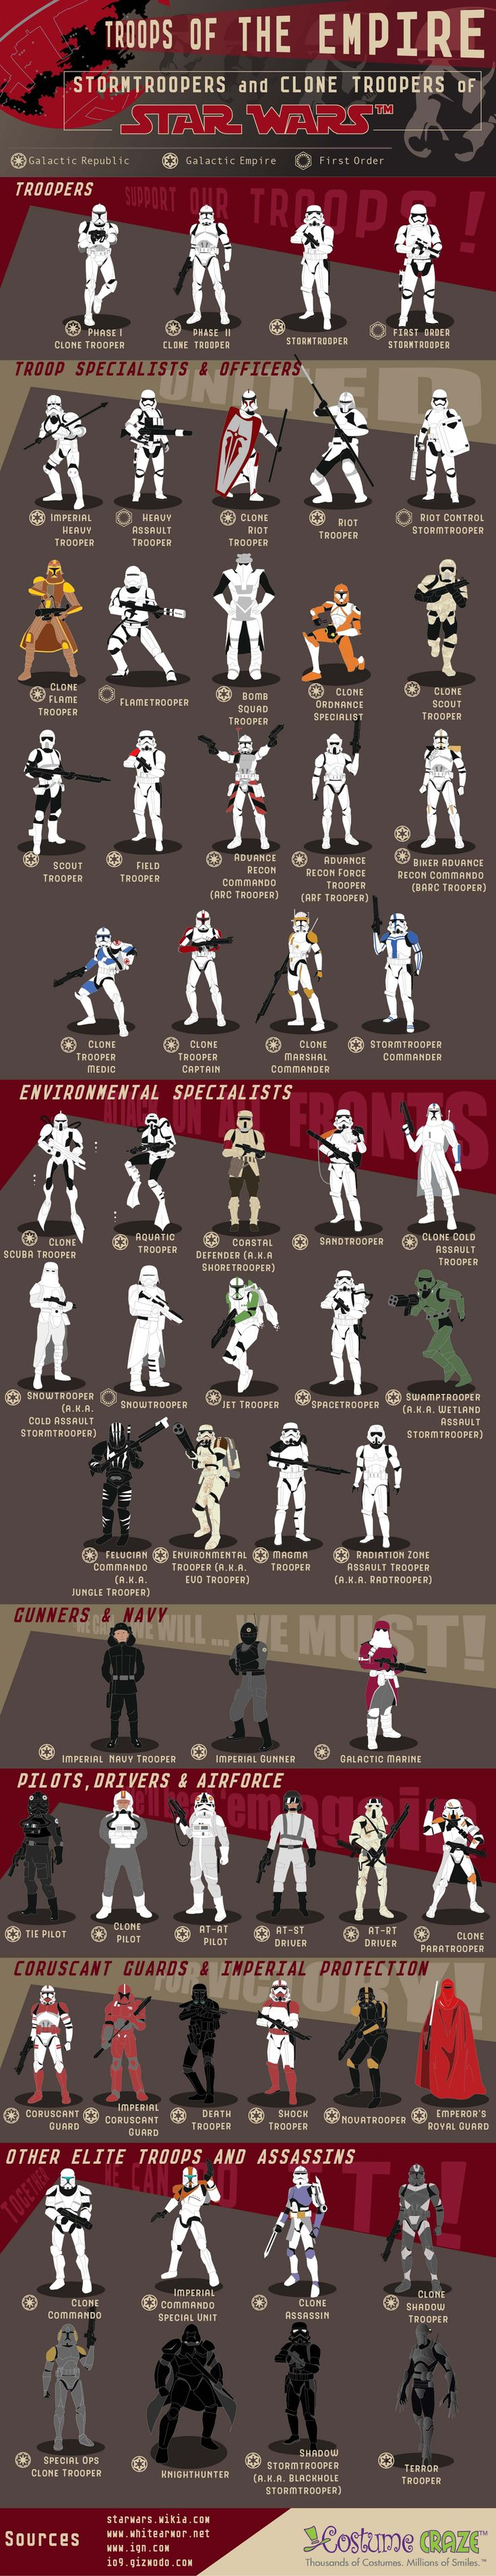 Stormtroopers & Clone Troopers of Star Wars